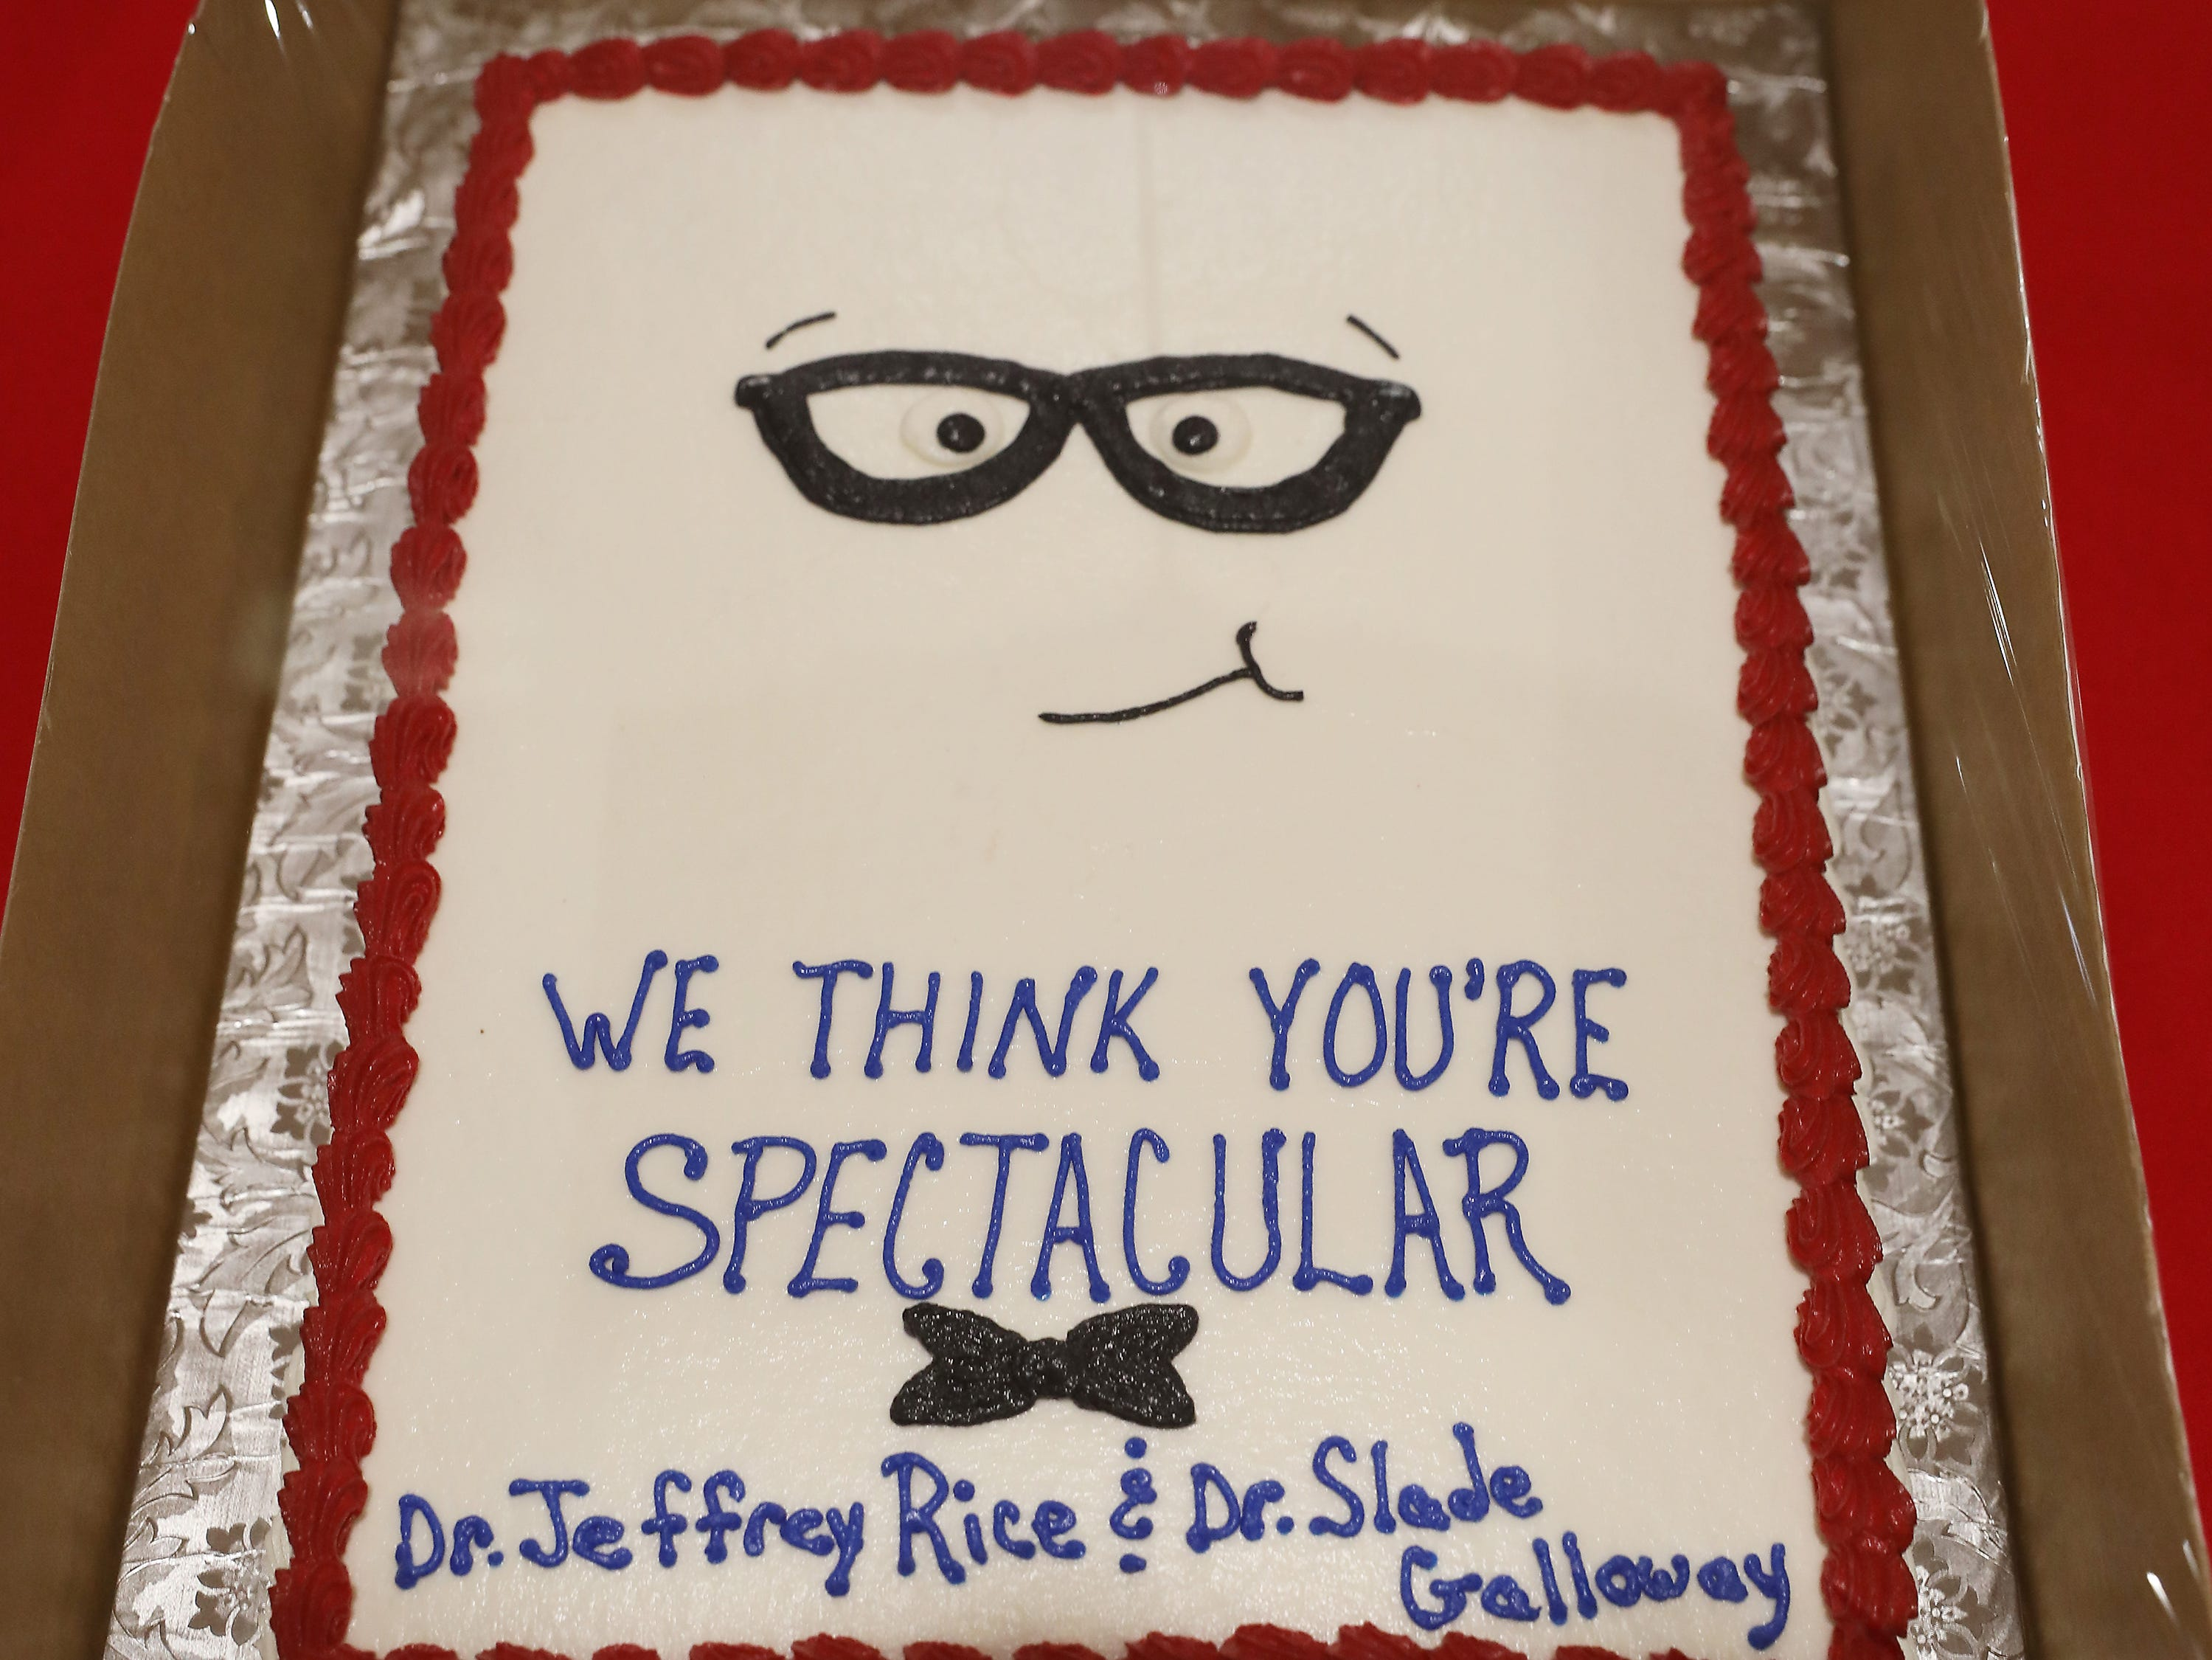 9:45 A.M. Friday cake 248 Vision Source Dr. Rice & Dr. Galloway - eye exam, imaging, optomap imaging, $150 for materials; $295